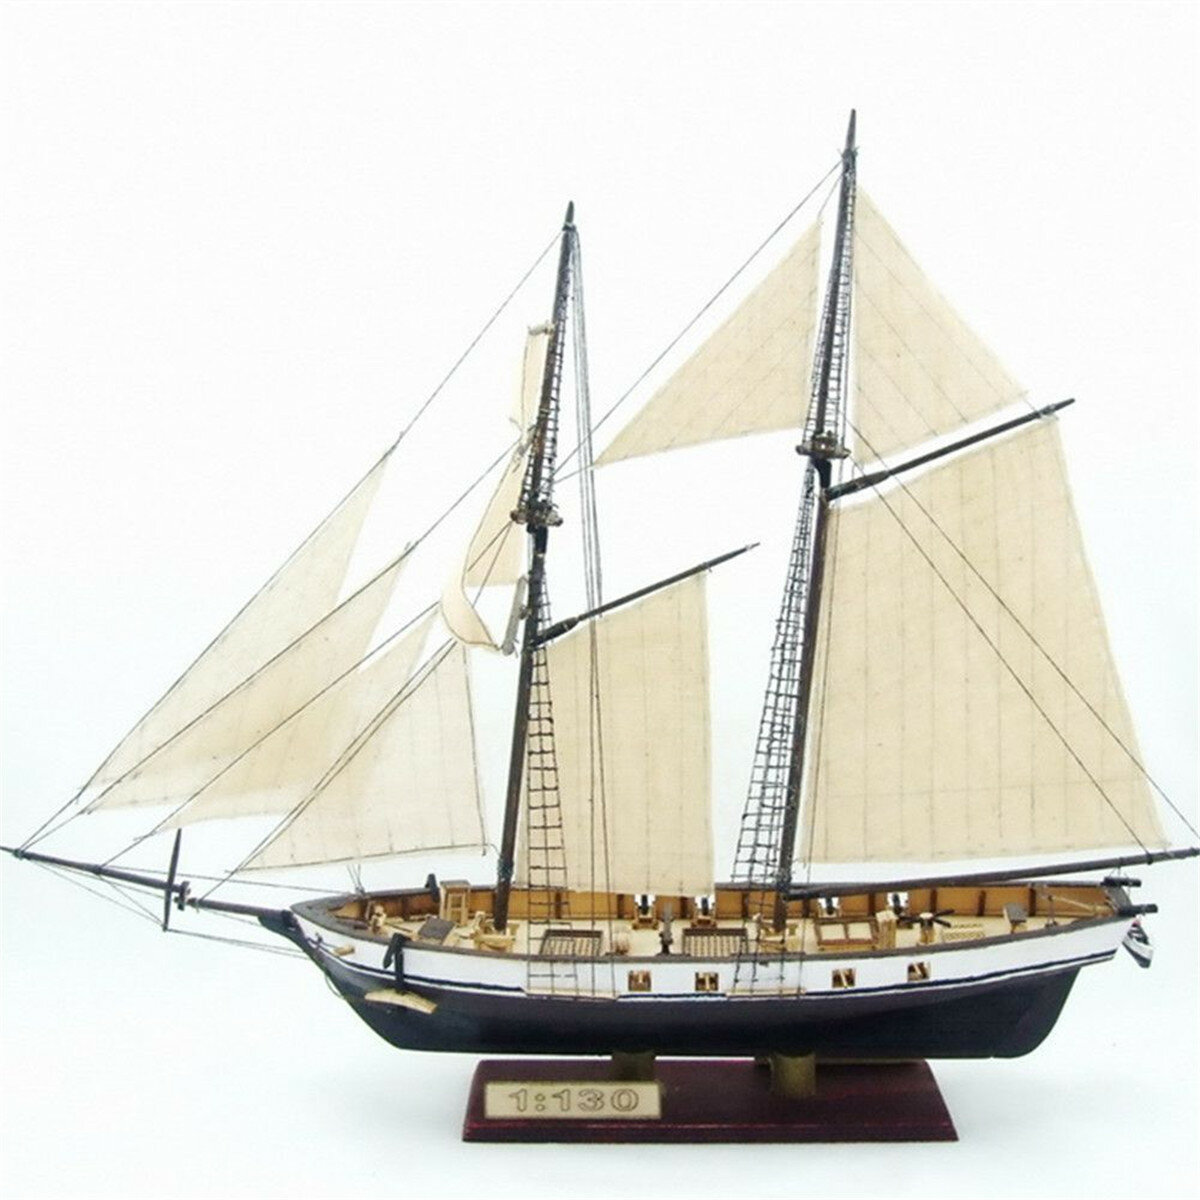 380x130x270mm DIY Ship Assembly Model Kits Classical Wooden Sailing Boats  Scale Model Decoration